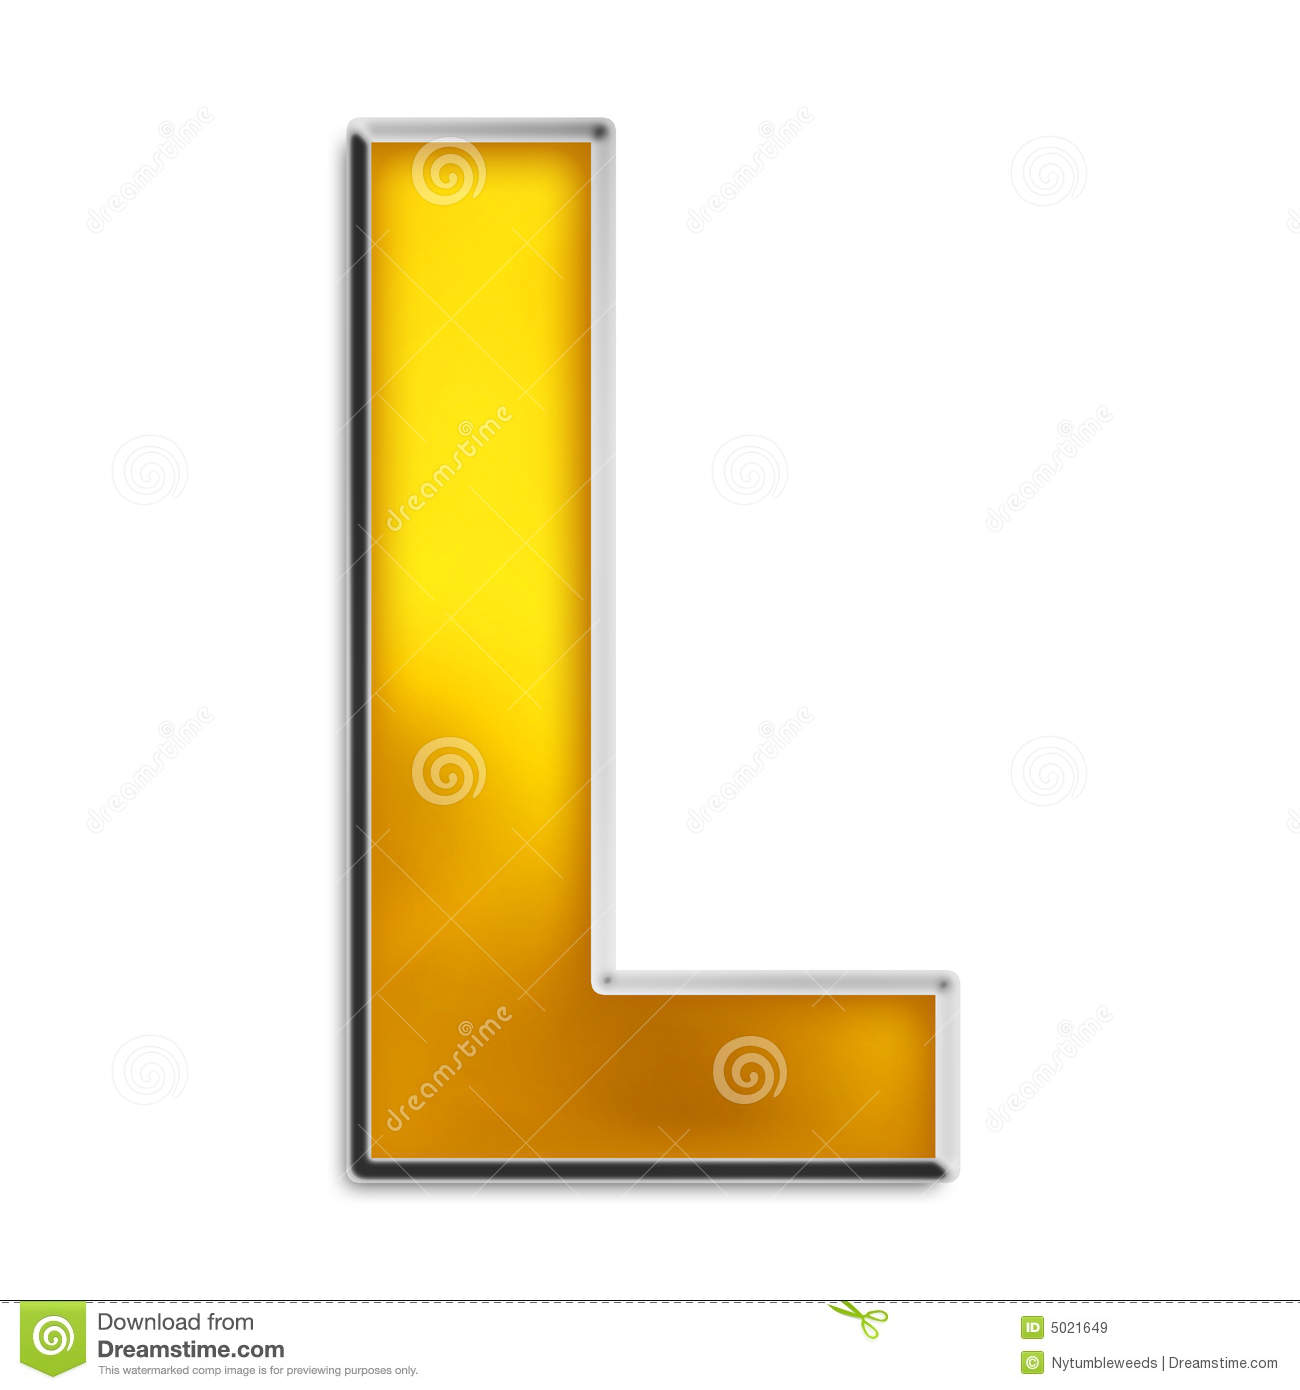 fee0c38657a8 Isolated Letter S In Shiny Gold Stock Illustration - Illustration of ...